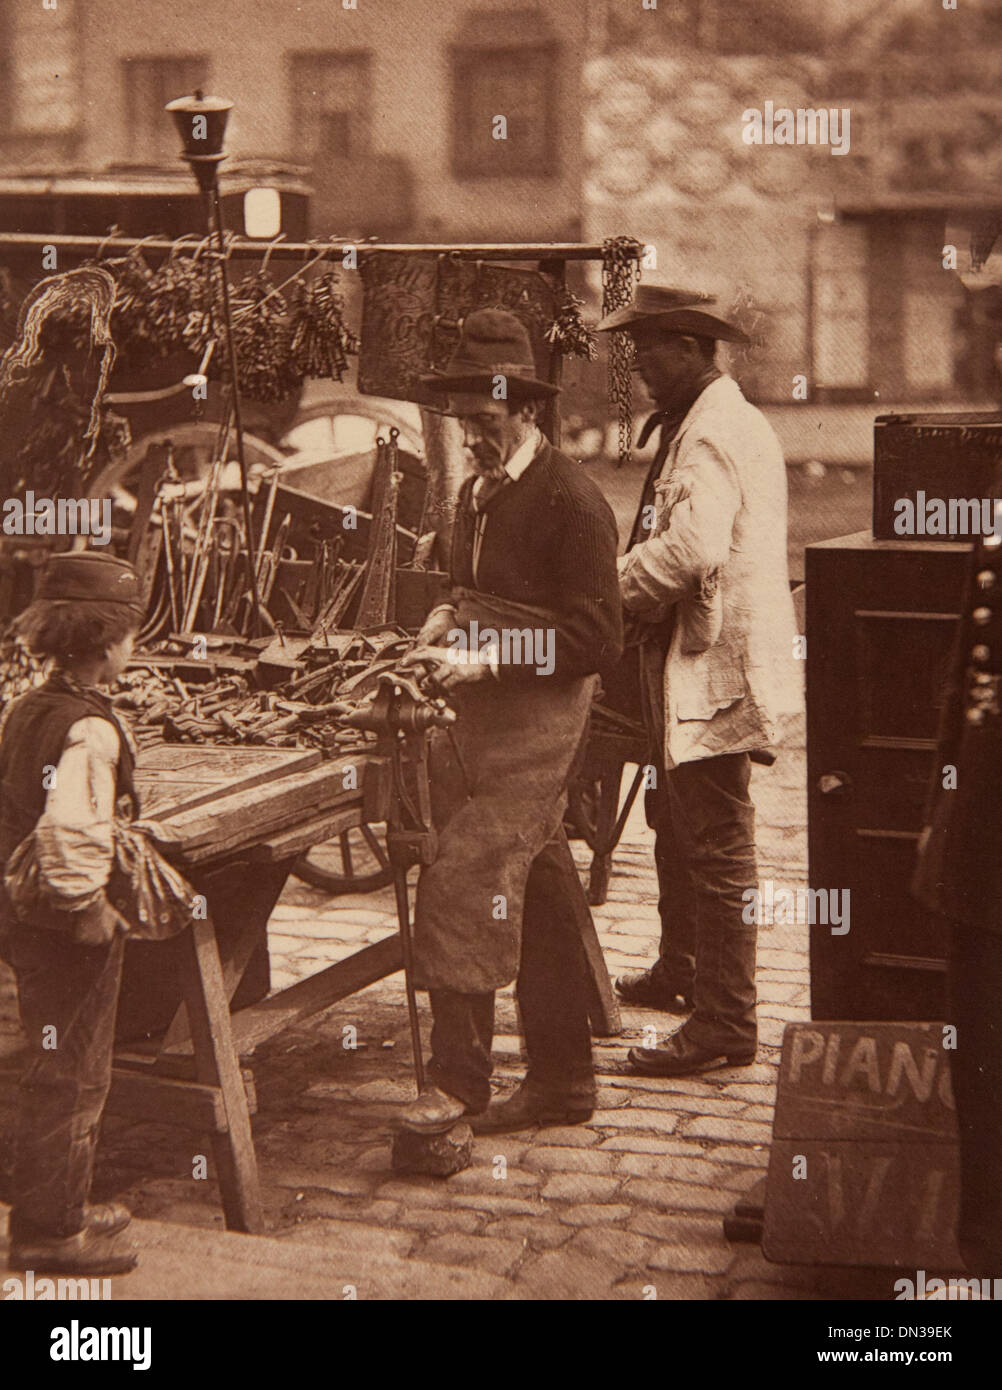 Photograph showing 'The street locksmith' in the Street Life in London book - Stock Image